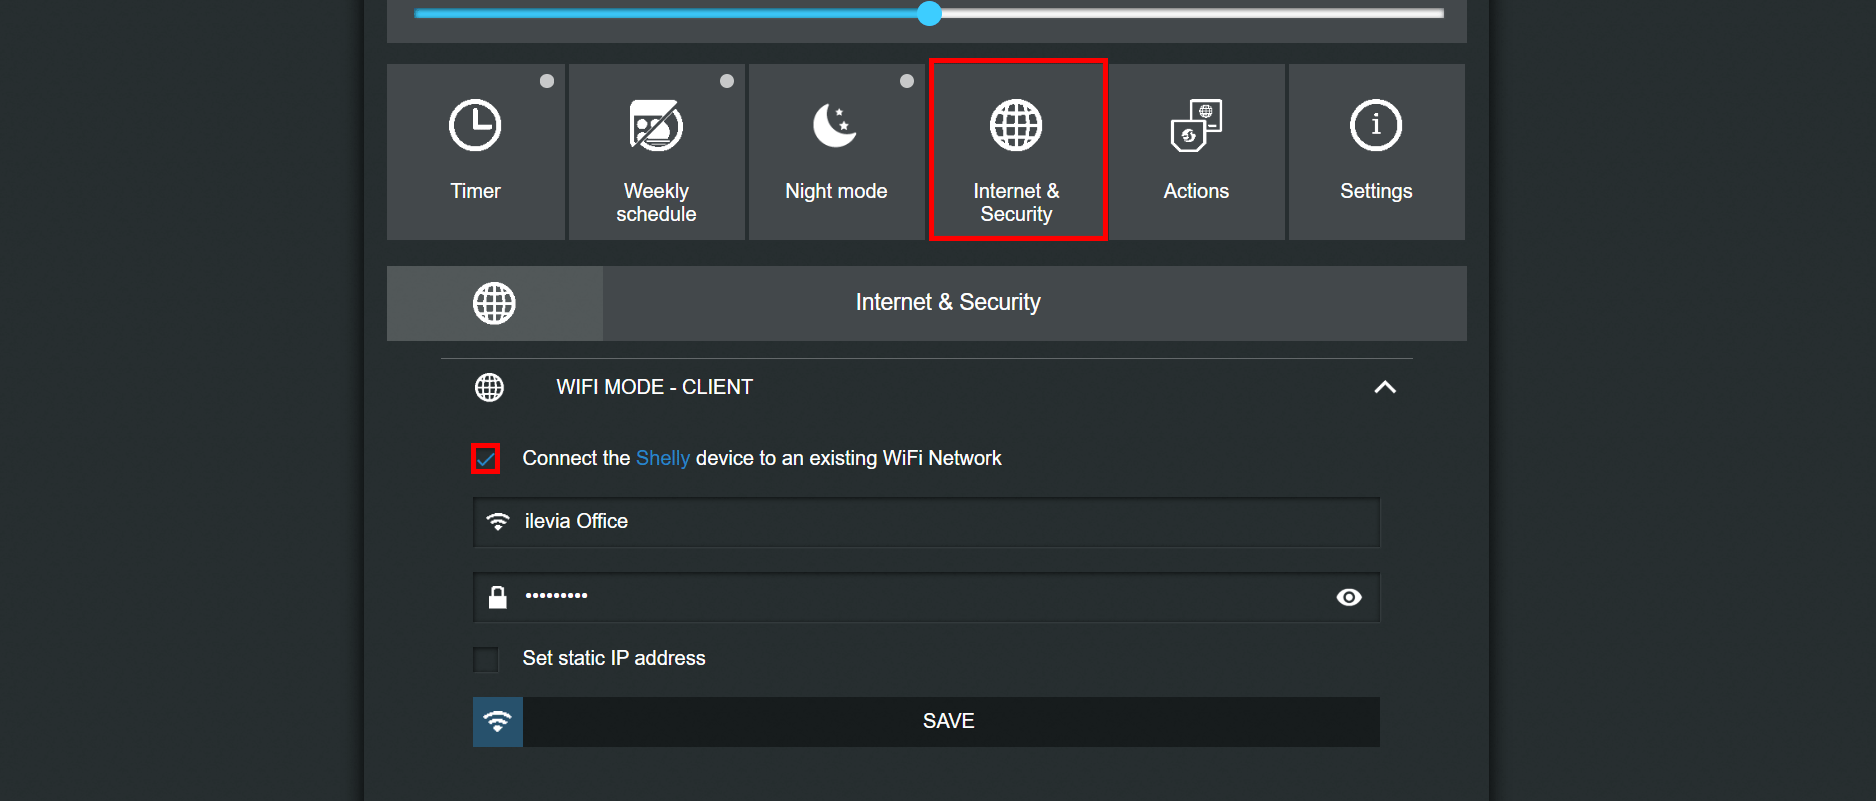 How to set the wifi client mode to shelly device